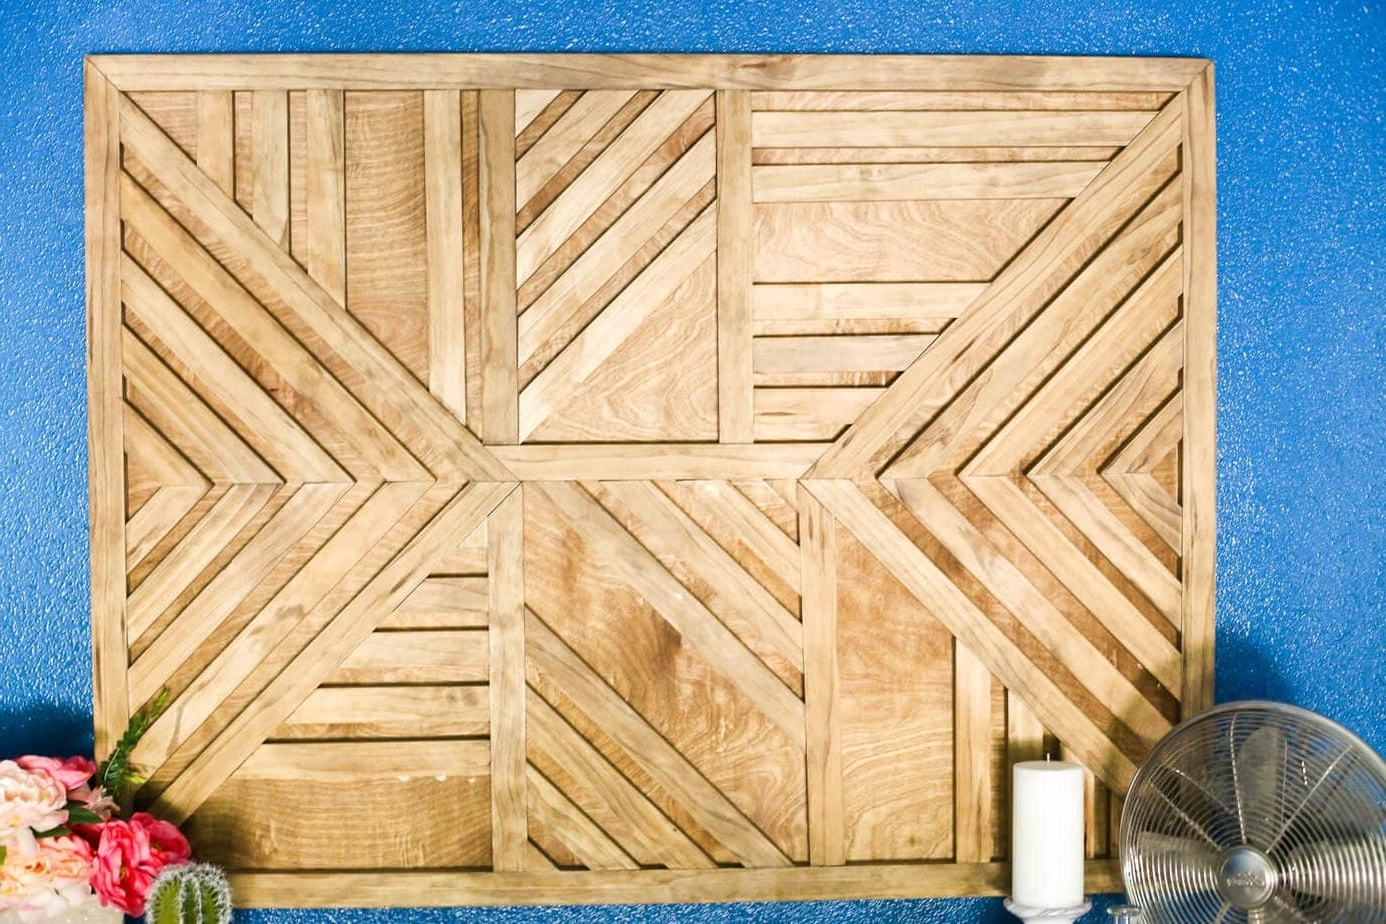 Preferred Diy Wood Wall Art – How To Make Your Own! // Love & Renovations Pertaining To Diy Wood Wall Art (View 8 of 15)